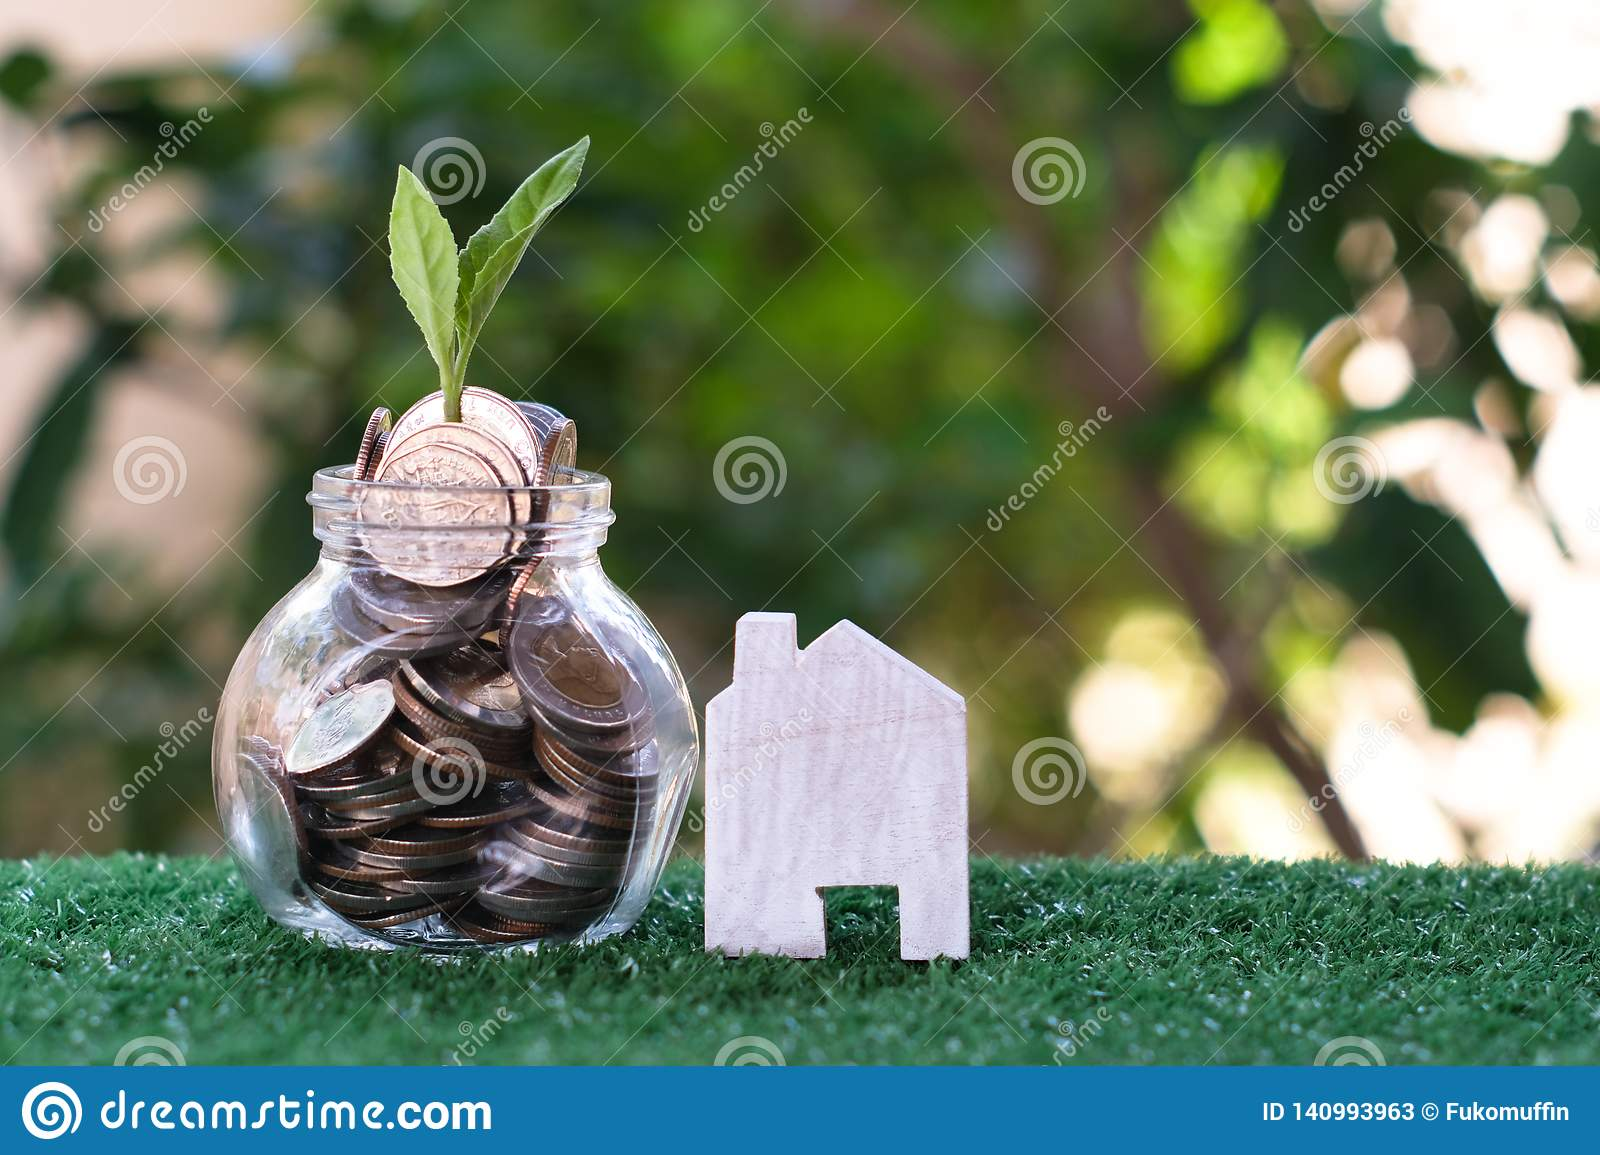 Plant growing from coins in glass jar. Wooden house model on artificial grass. Home mortgage and property investment concept